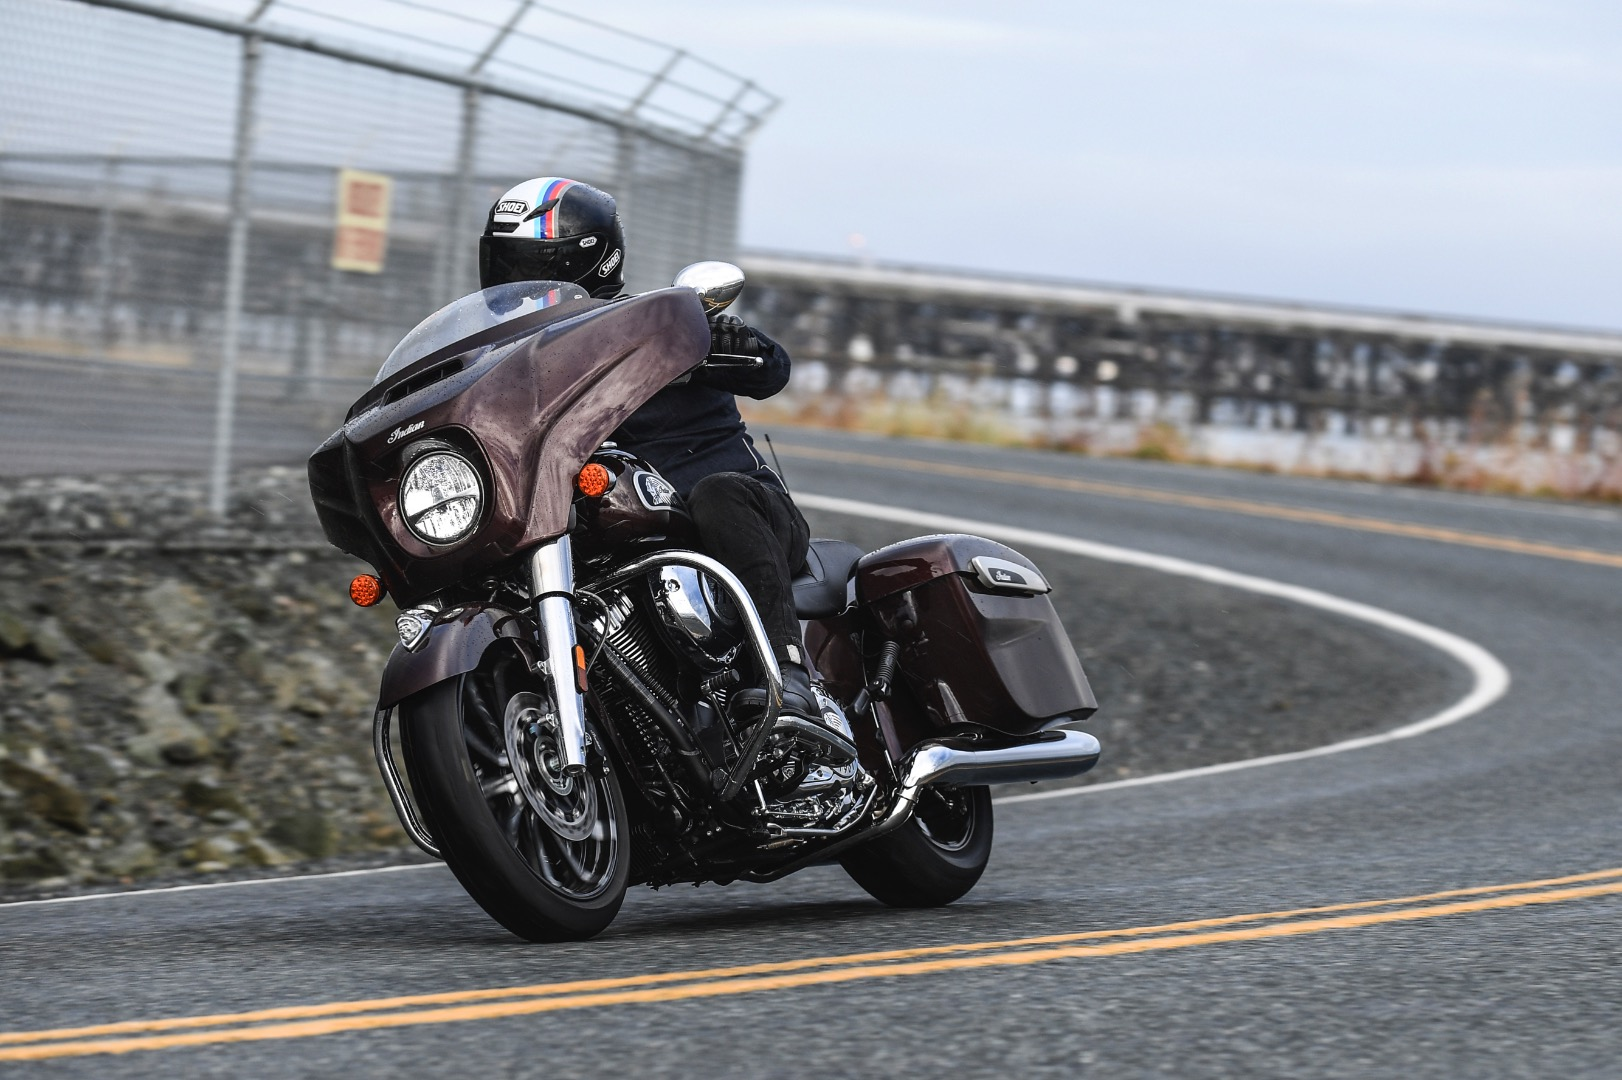 : 2019 Indian Chieftain Limited review